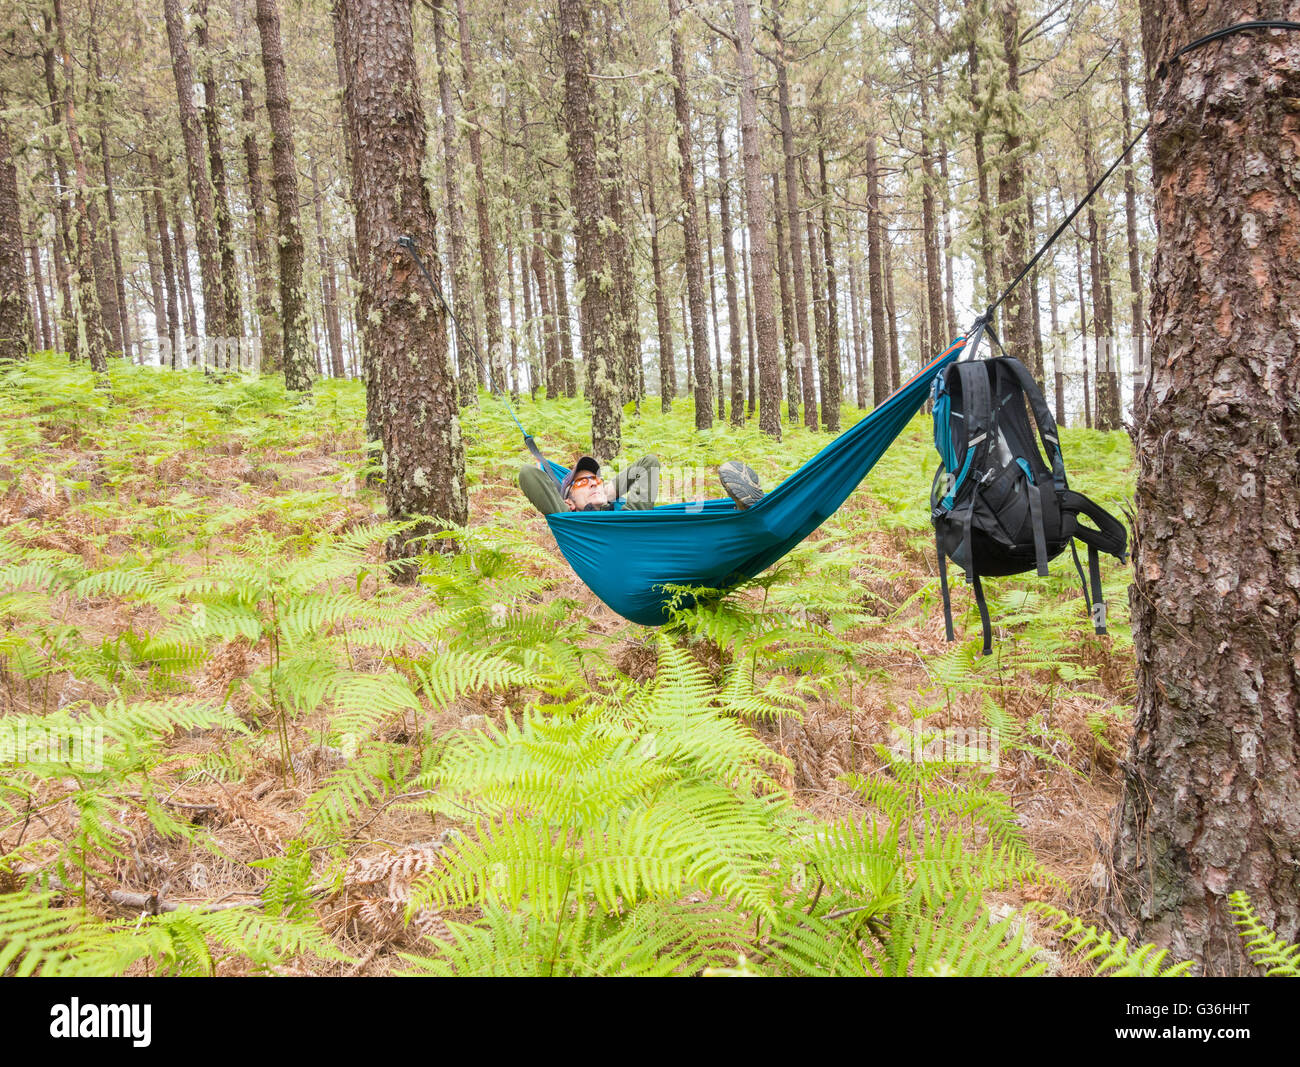 Mature male hiker relaxing in hammock in pine forest. Possible uses: mature backpacker/retirement/adventure/savings - Stock Image